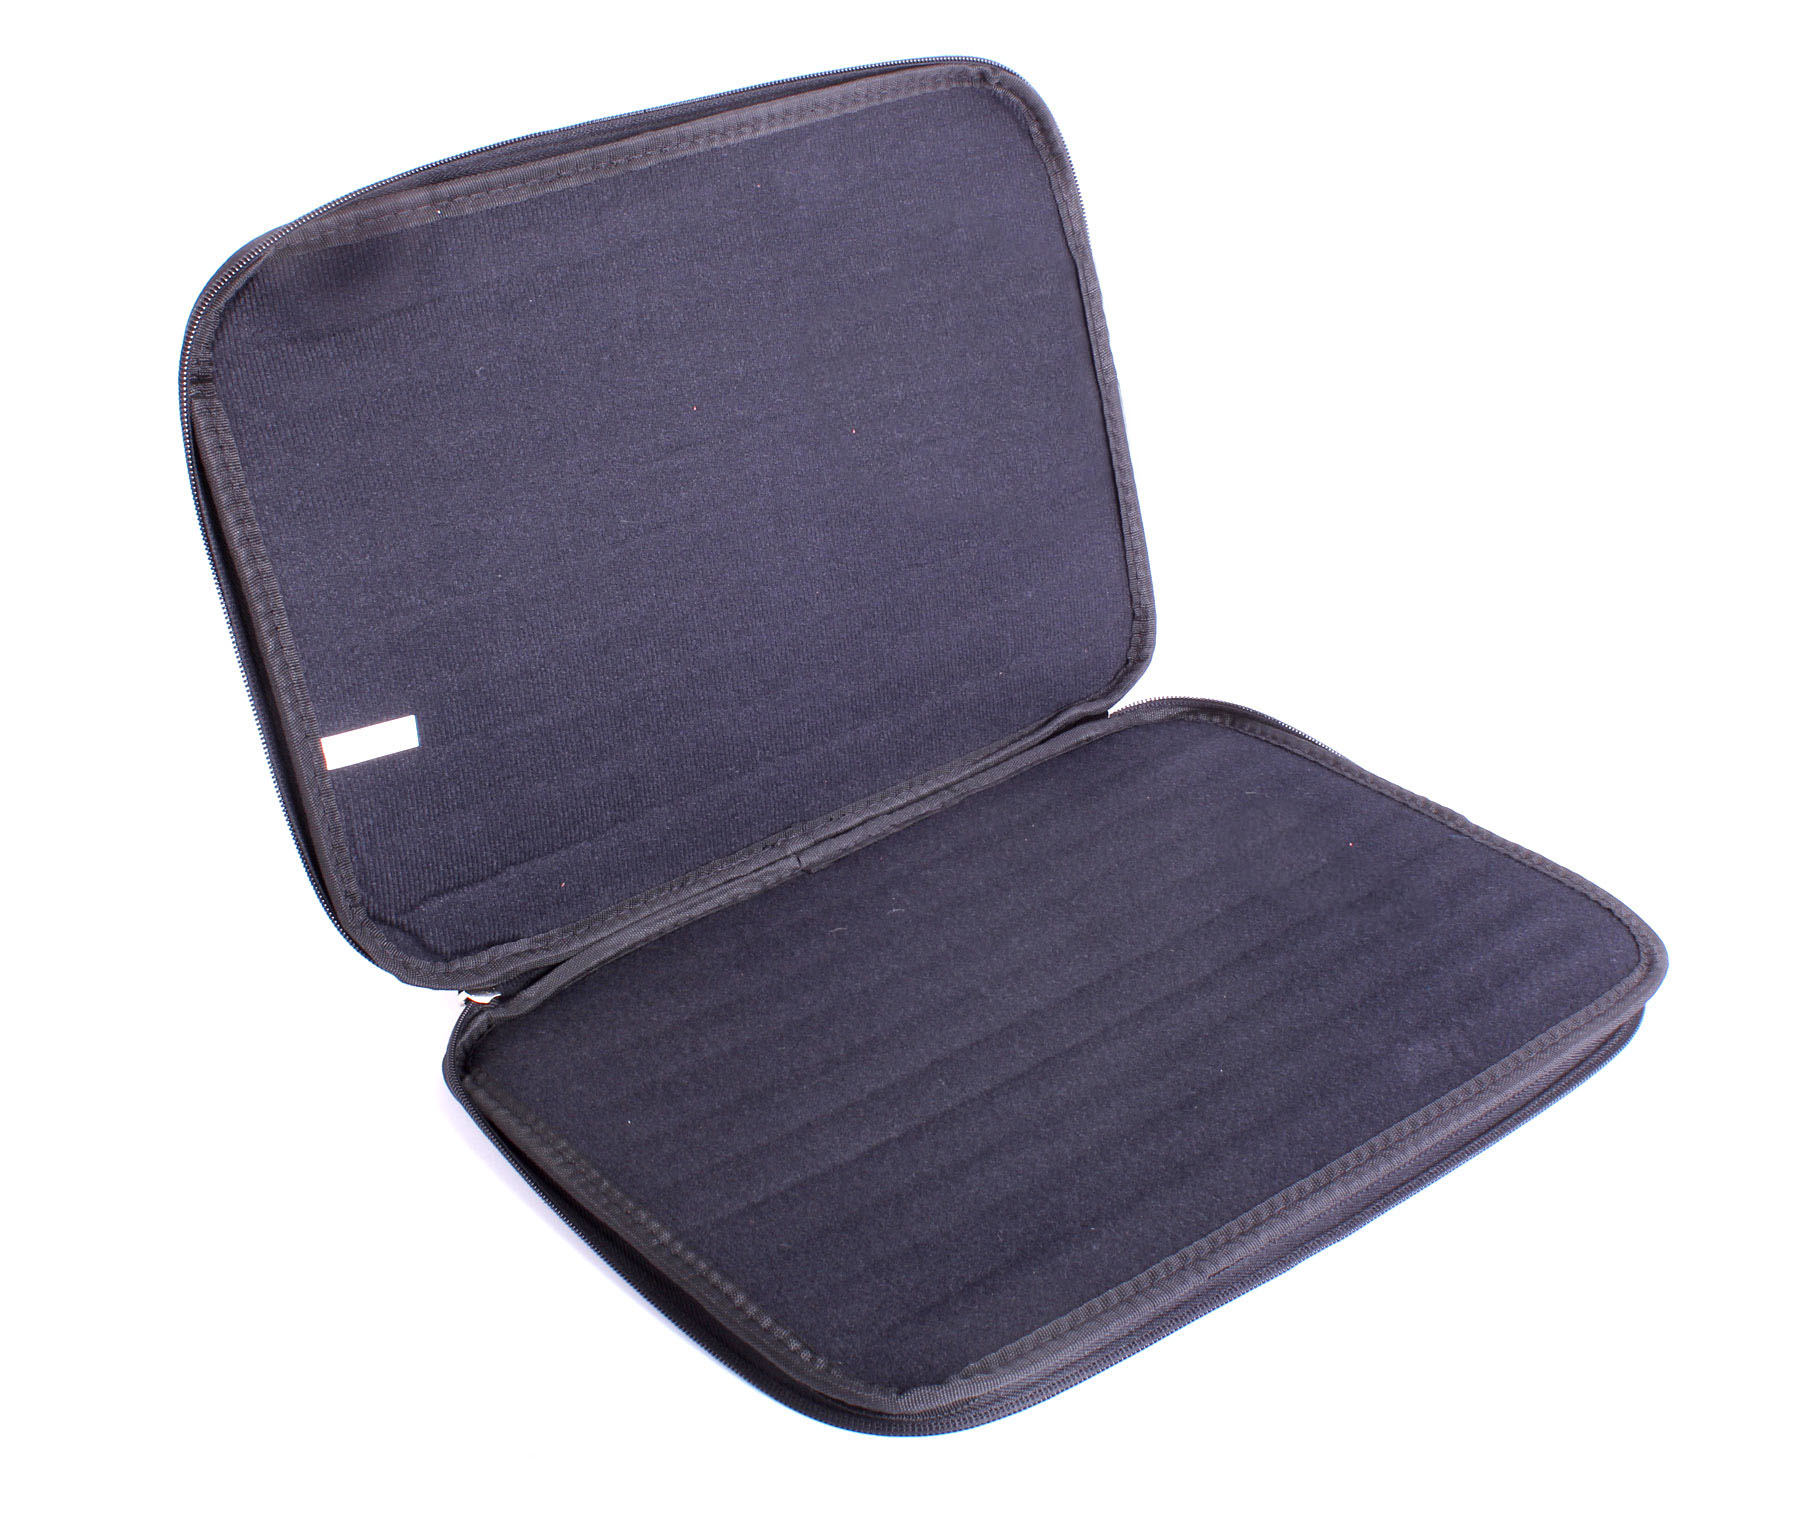 Housse macbook air 13 pouces for Housse macbook air 13